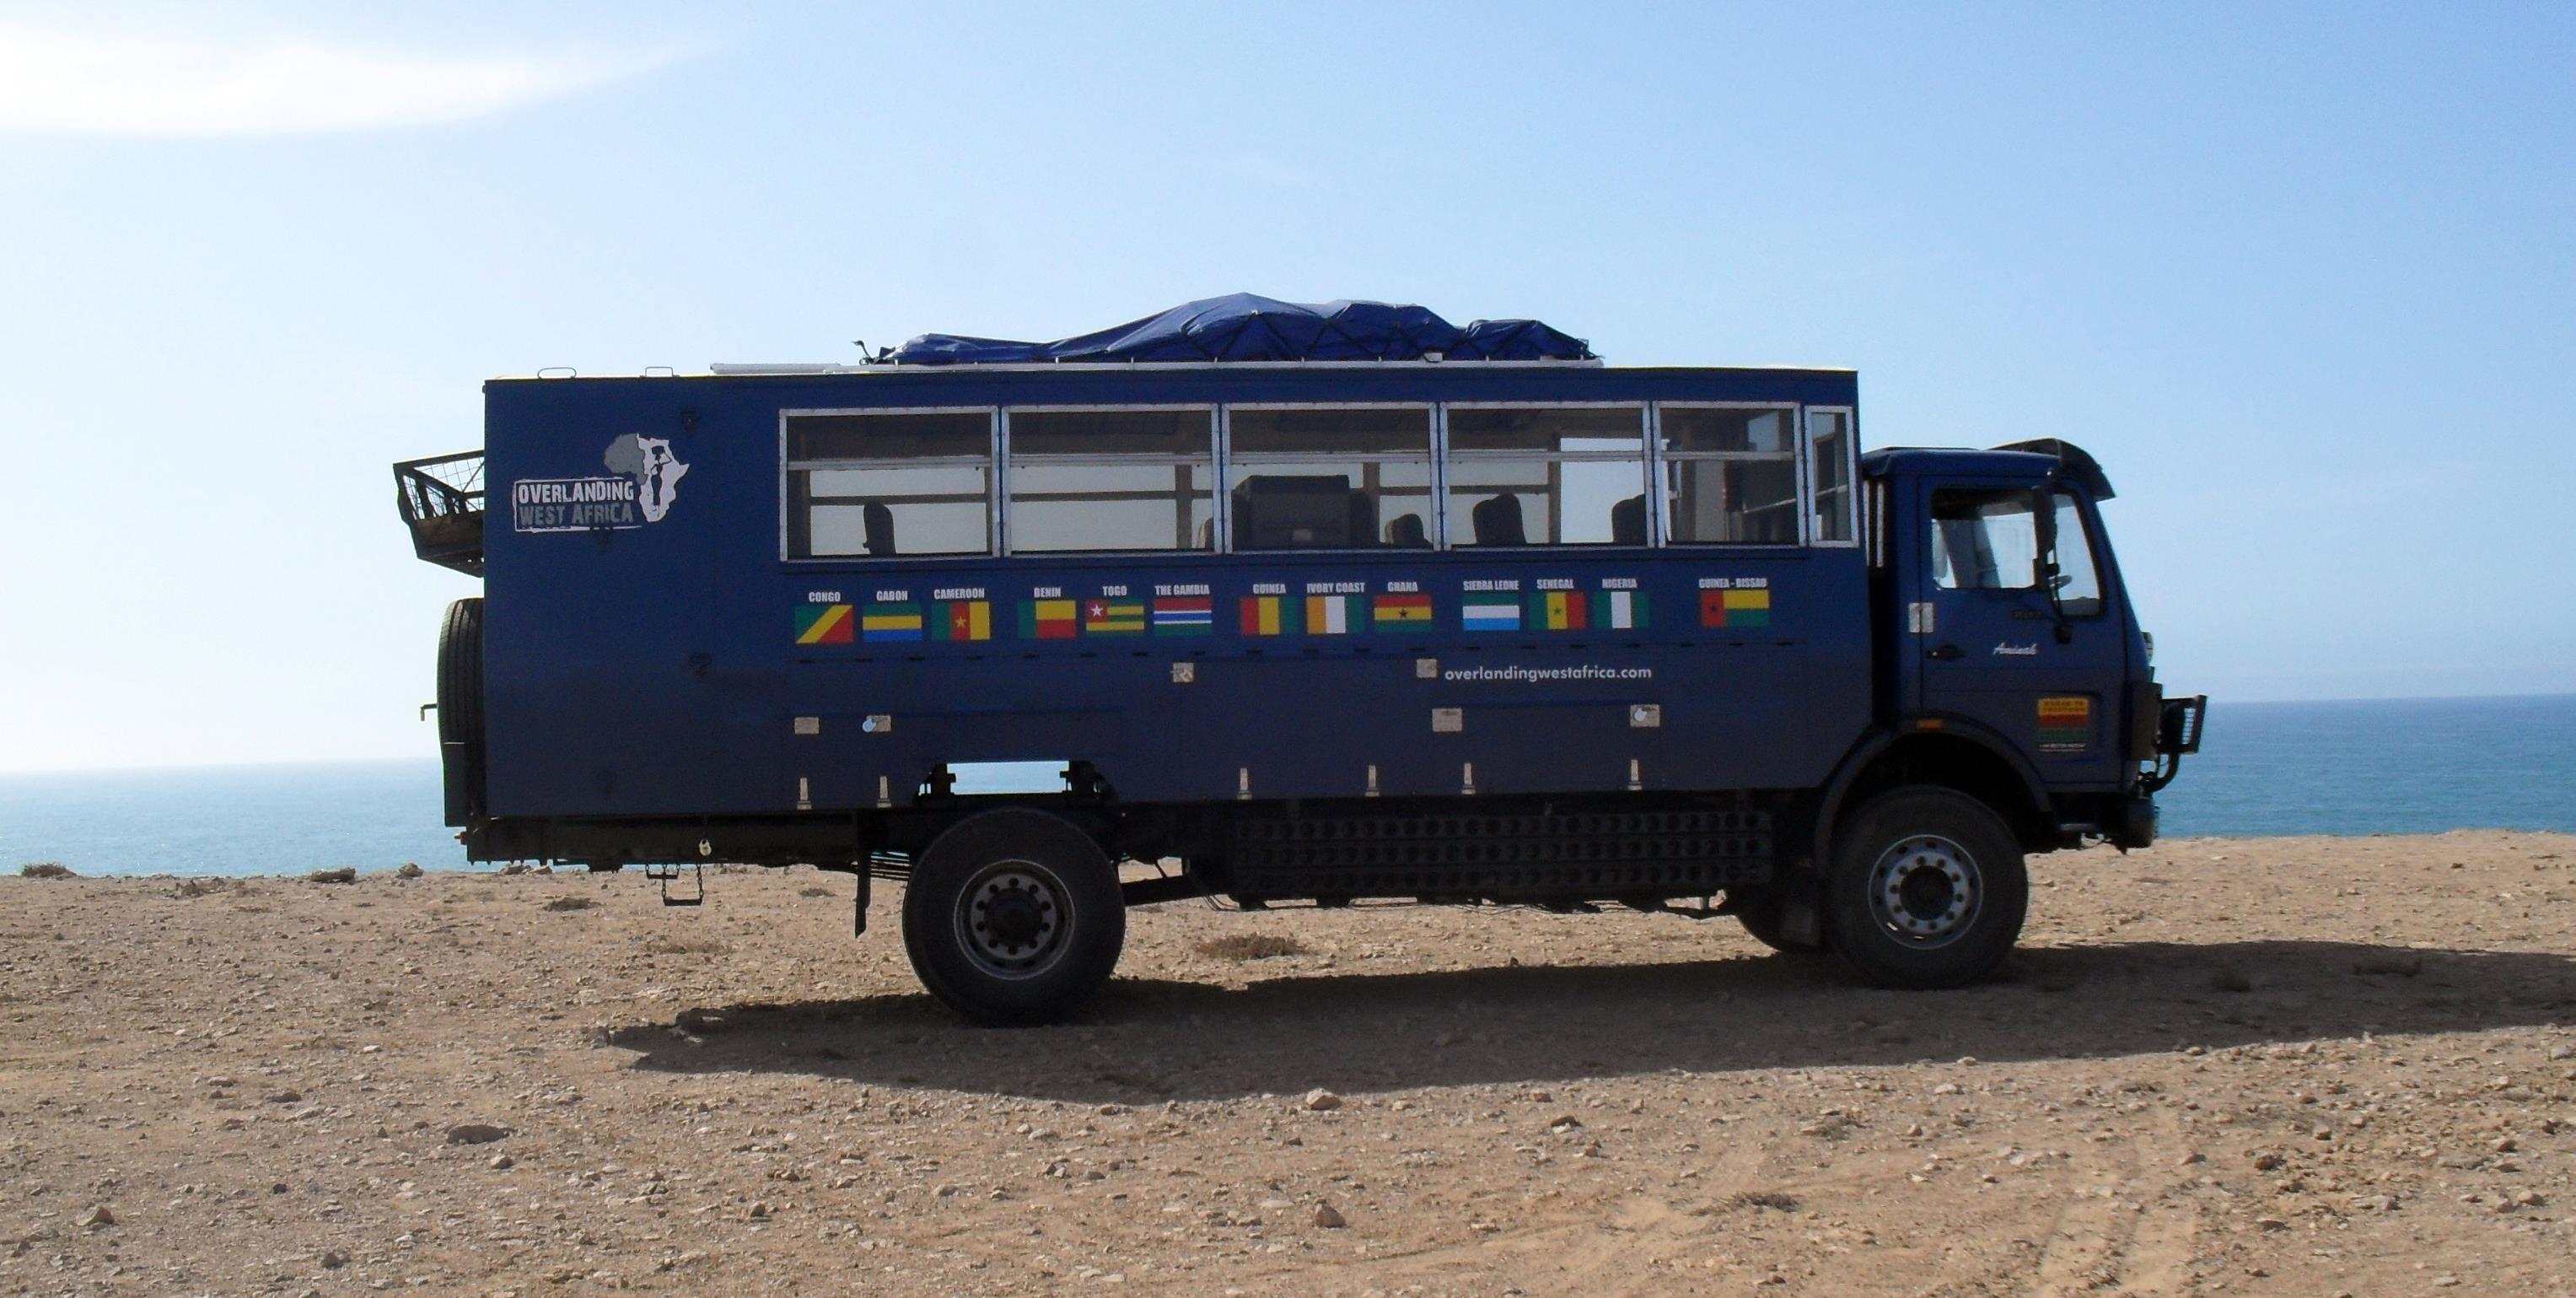 West Africa Overland Tours